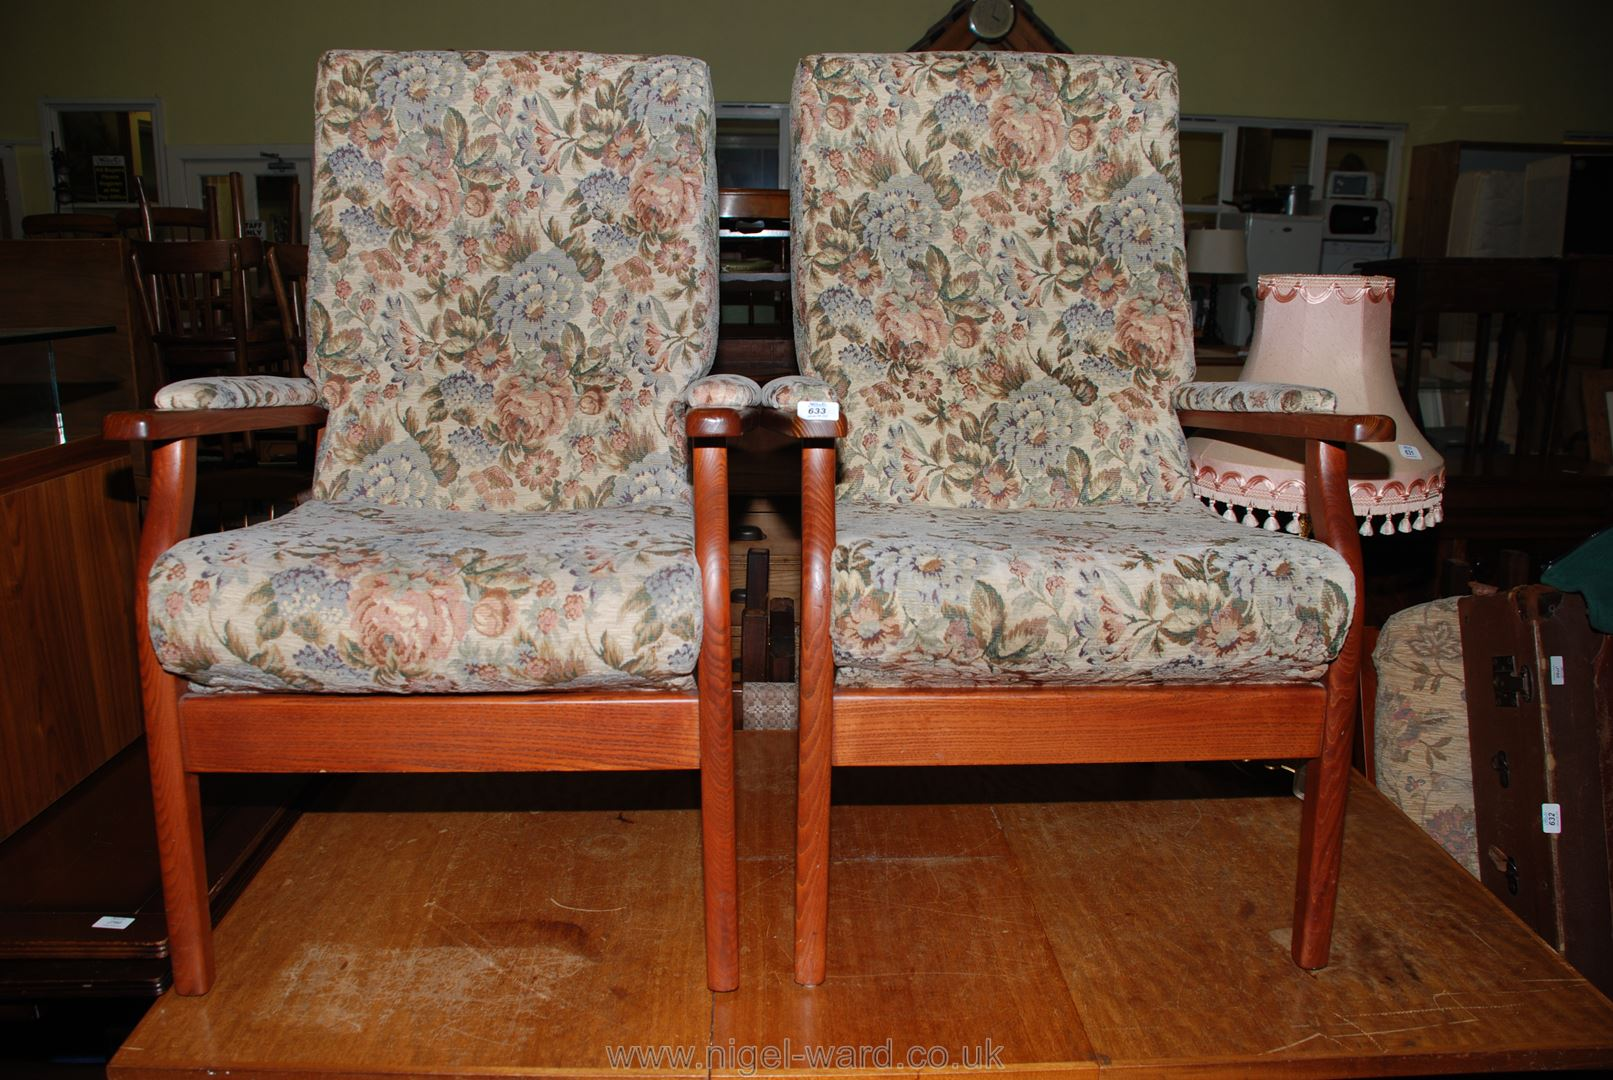 A pair of floral upholstered open-armed armchairs.